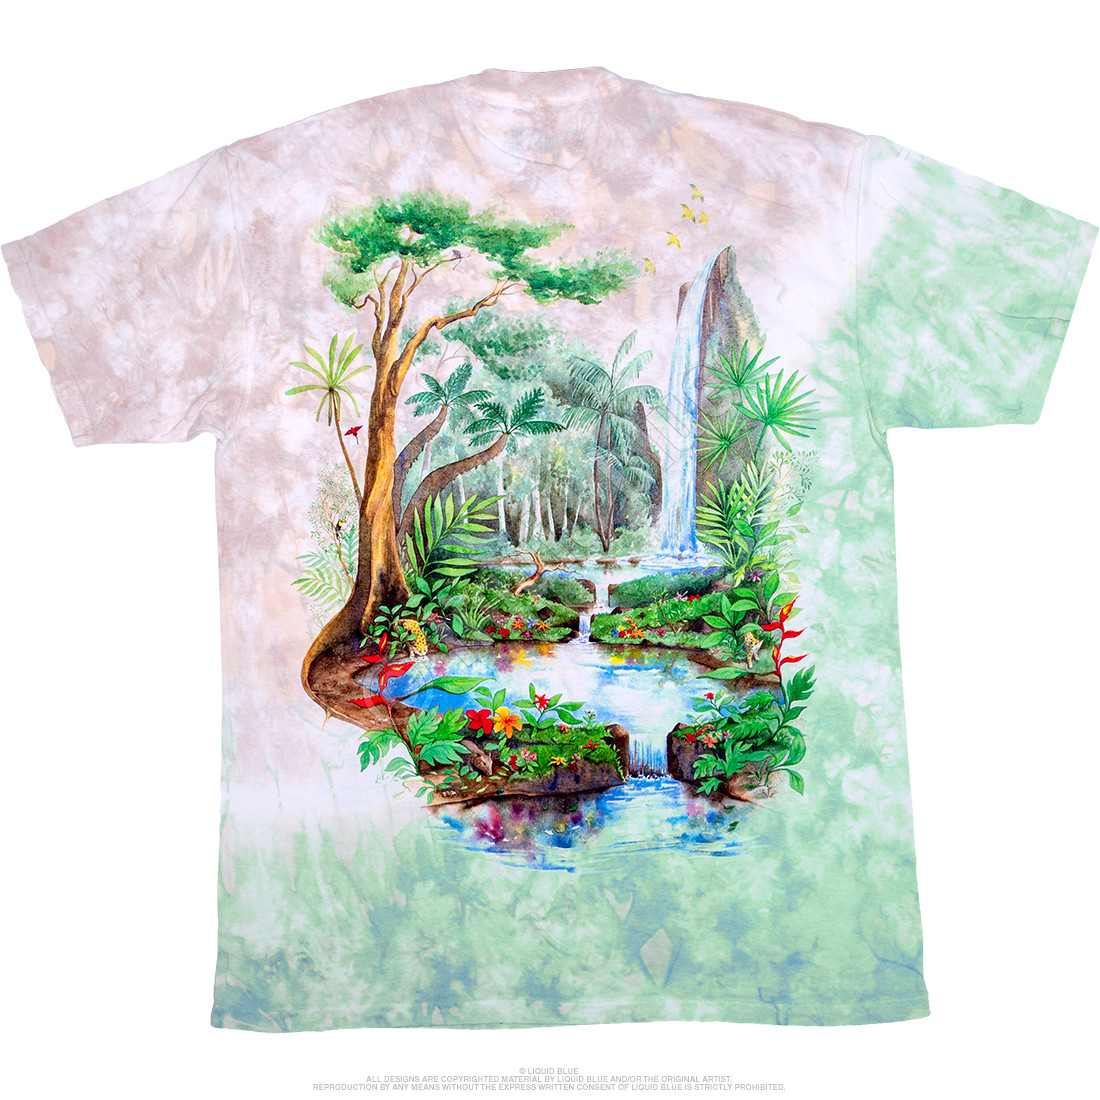 Rainforest Tie-Dye T-Shirt